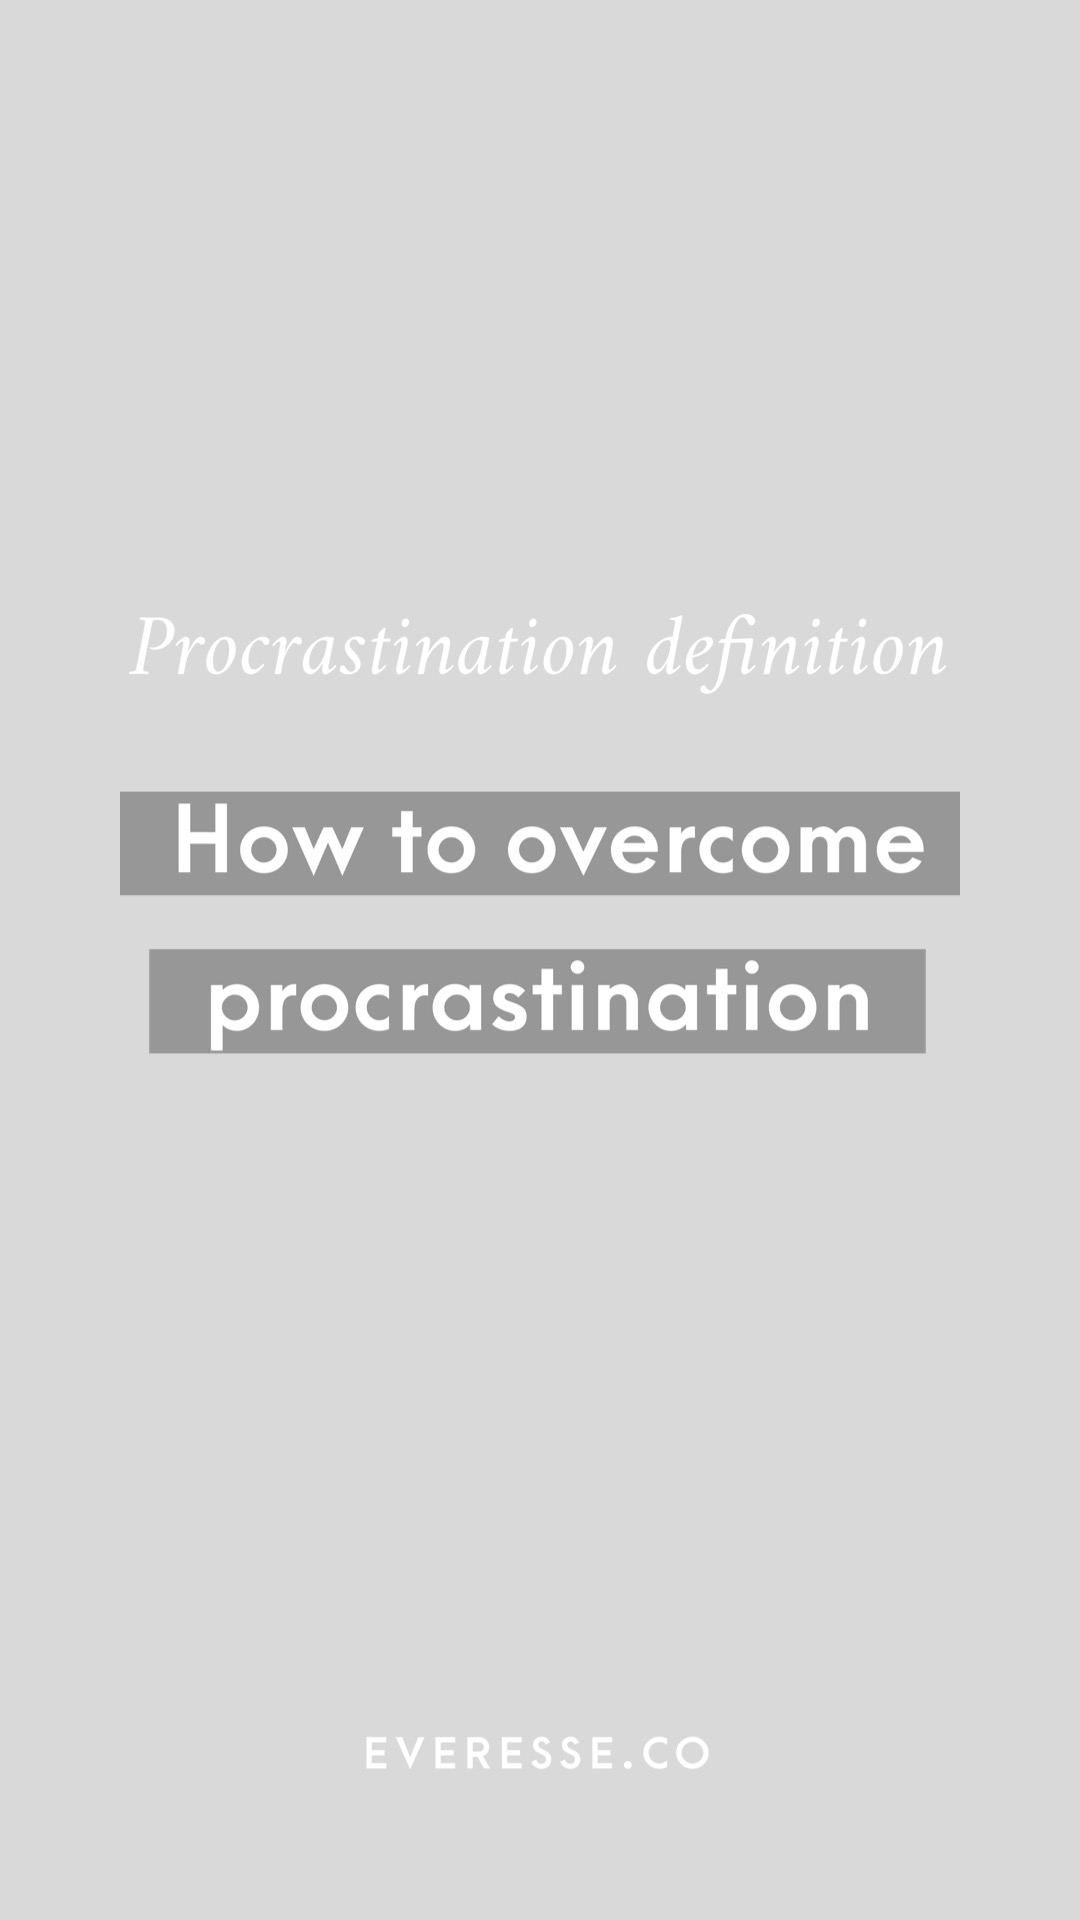 Procrastination definition: how to overcome procrastination by embracing it